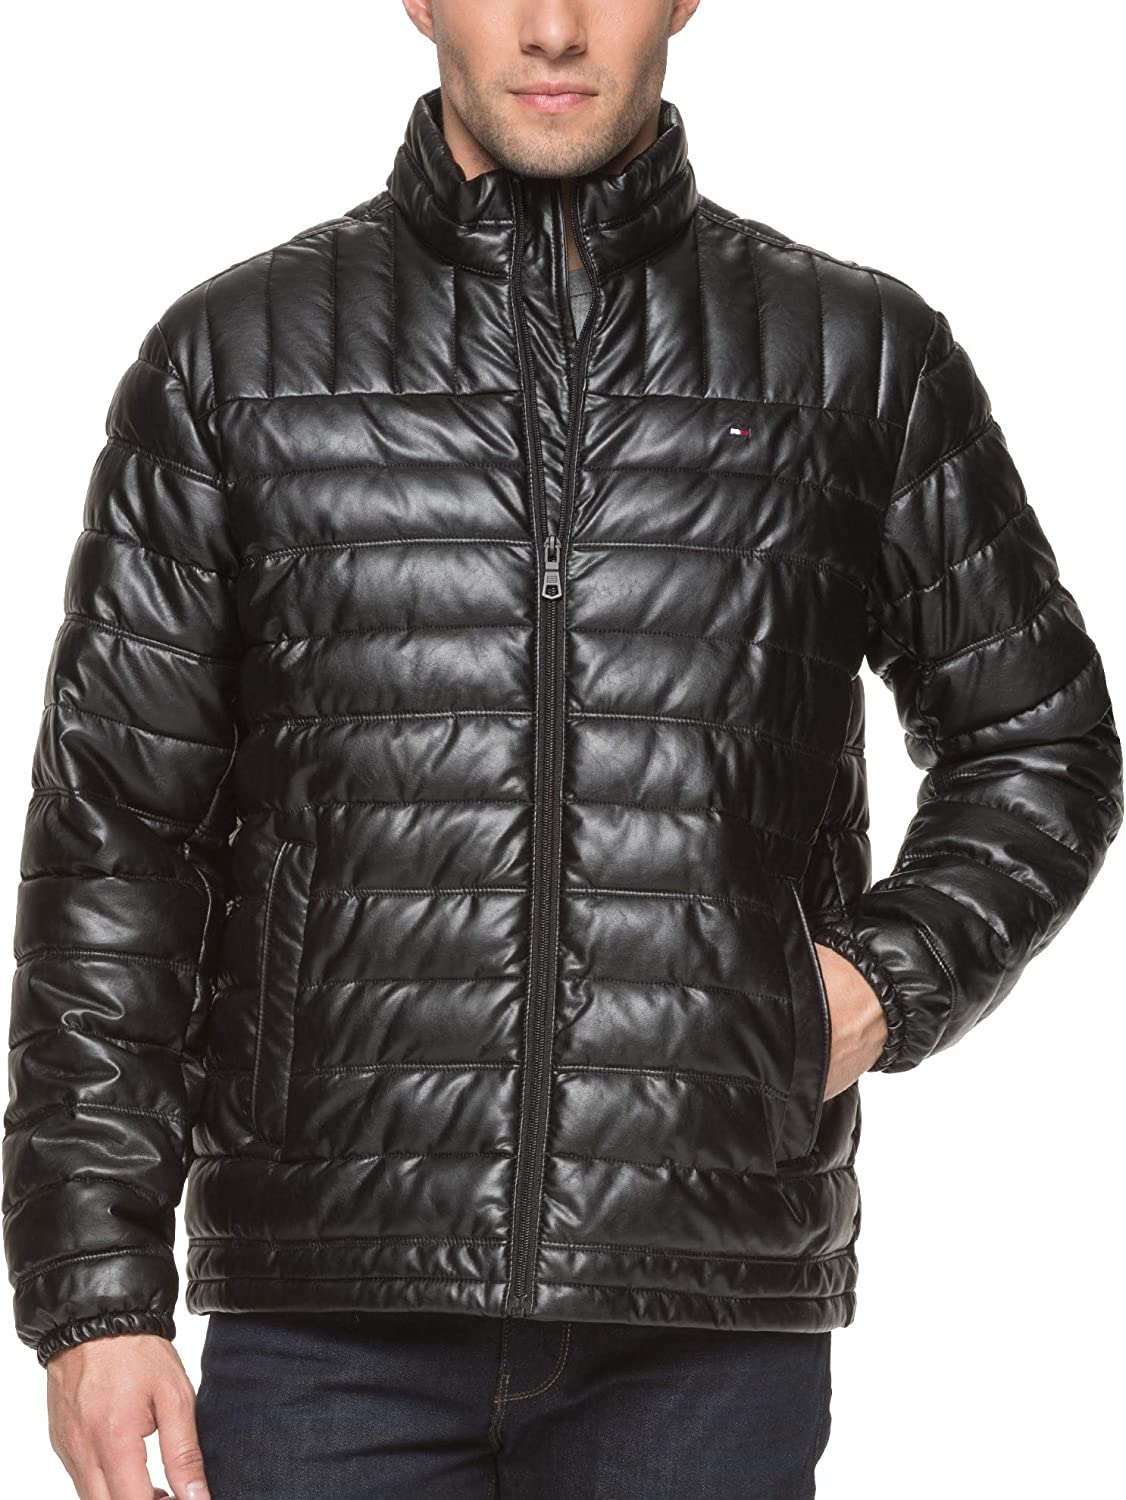 Tommy Hilfiger Mens Lightweight Quilted Faux Leather Puffer Jacket